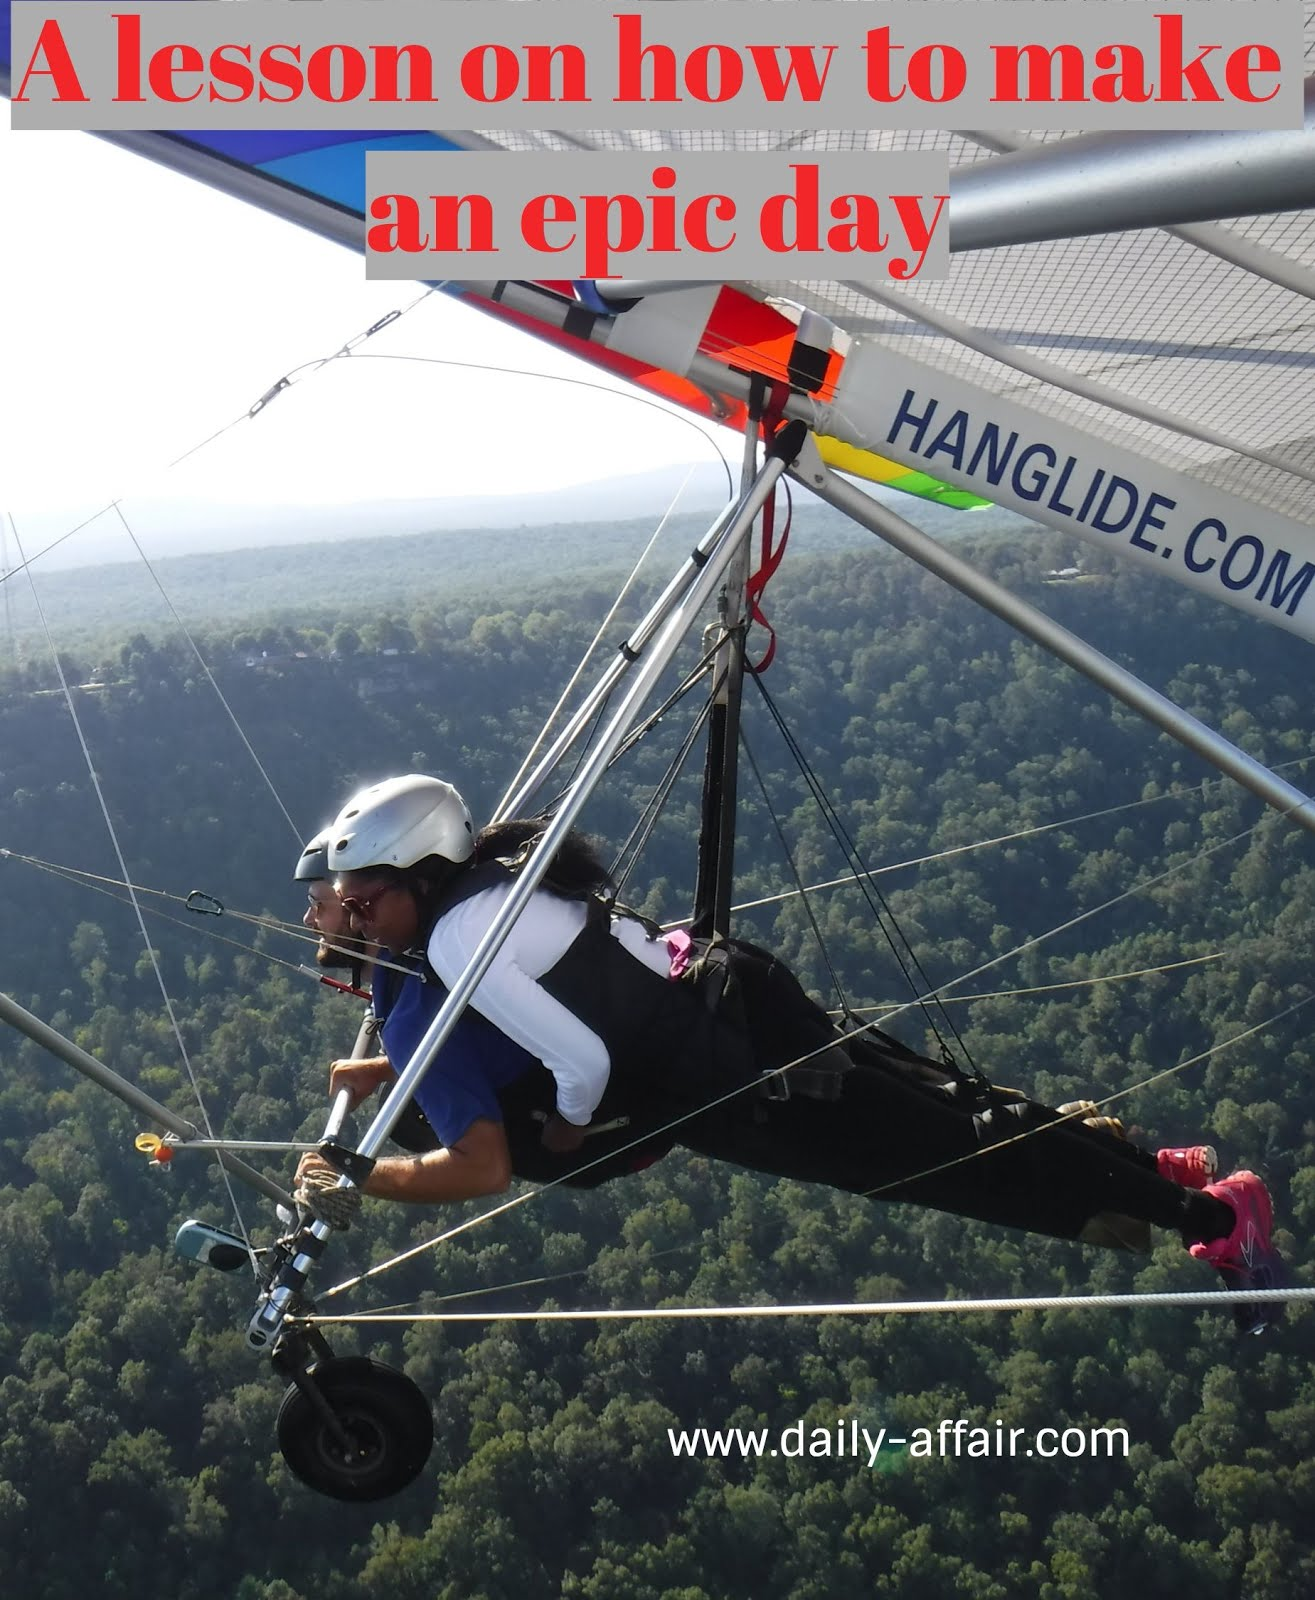 A lesson on how to make an epic day - The Daily Affair | a